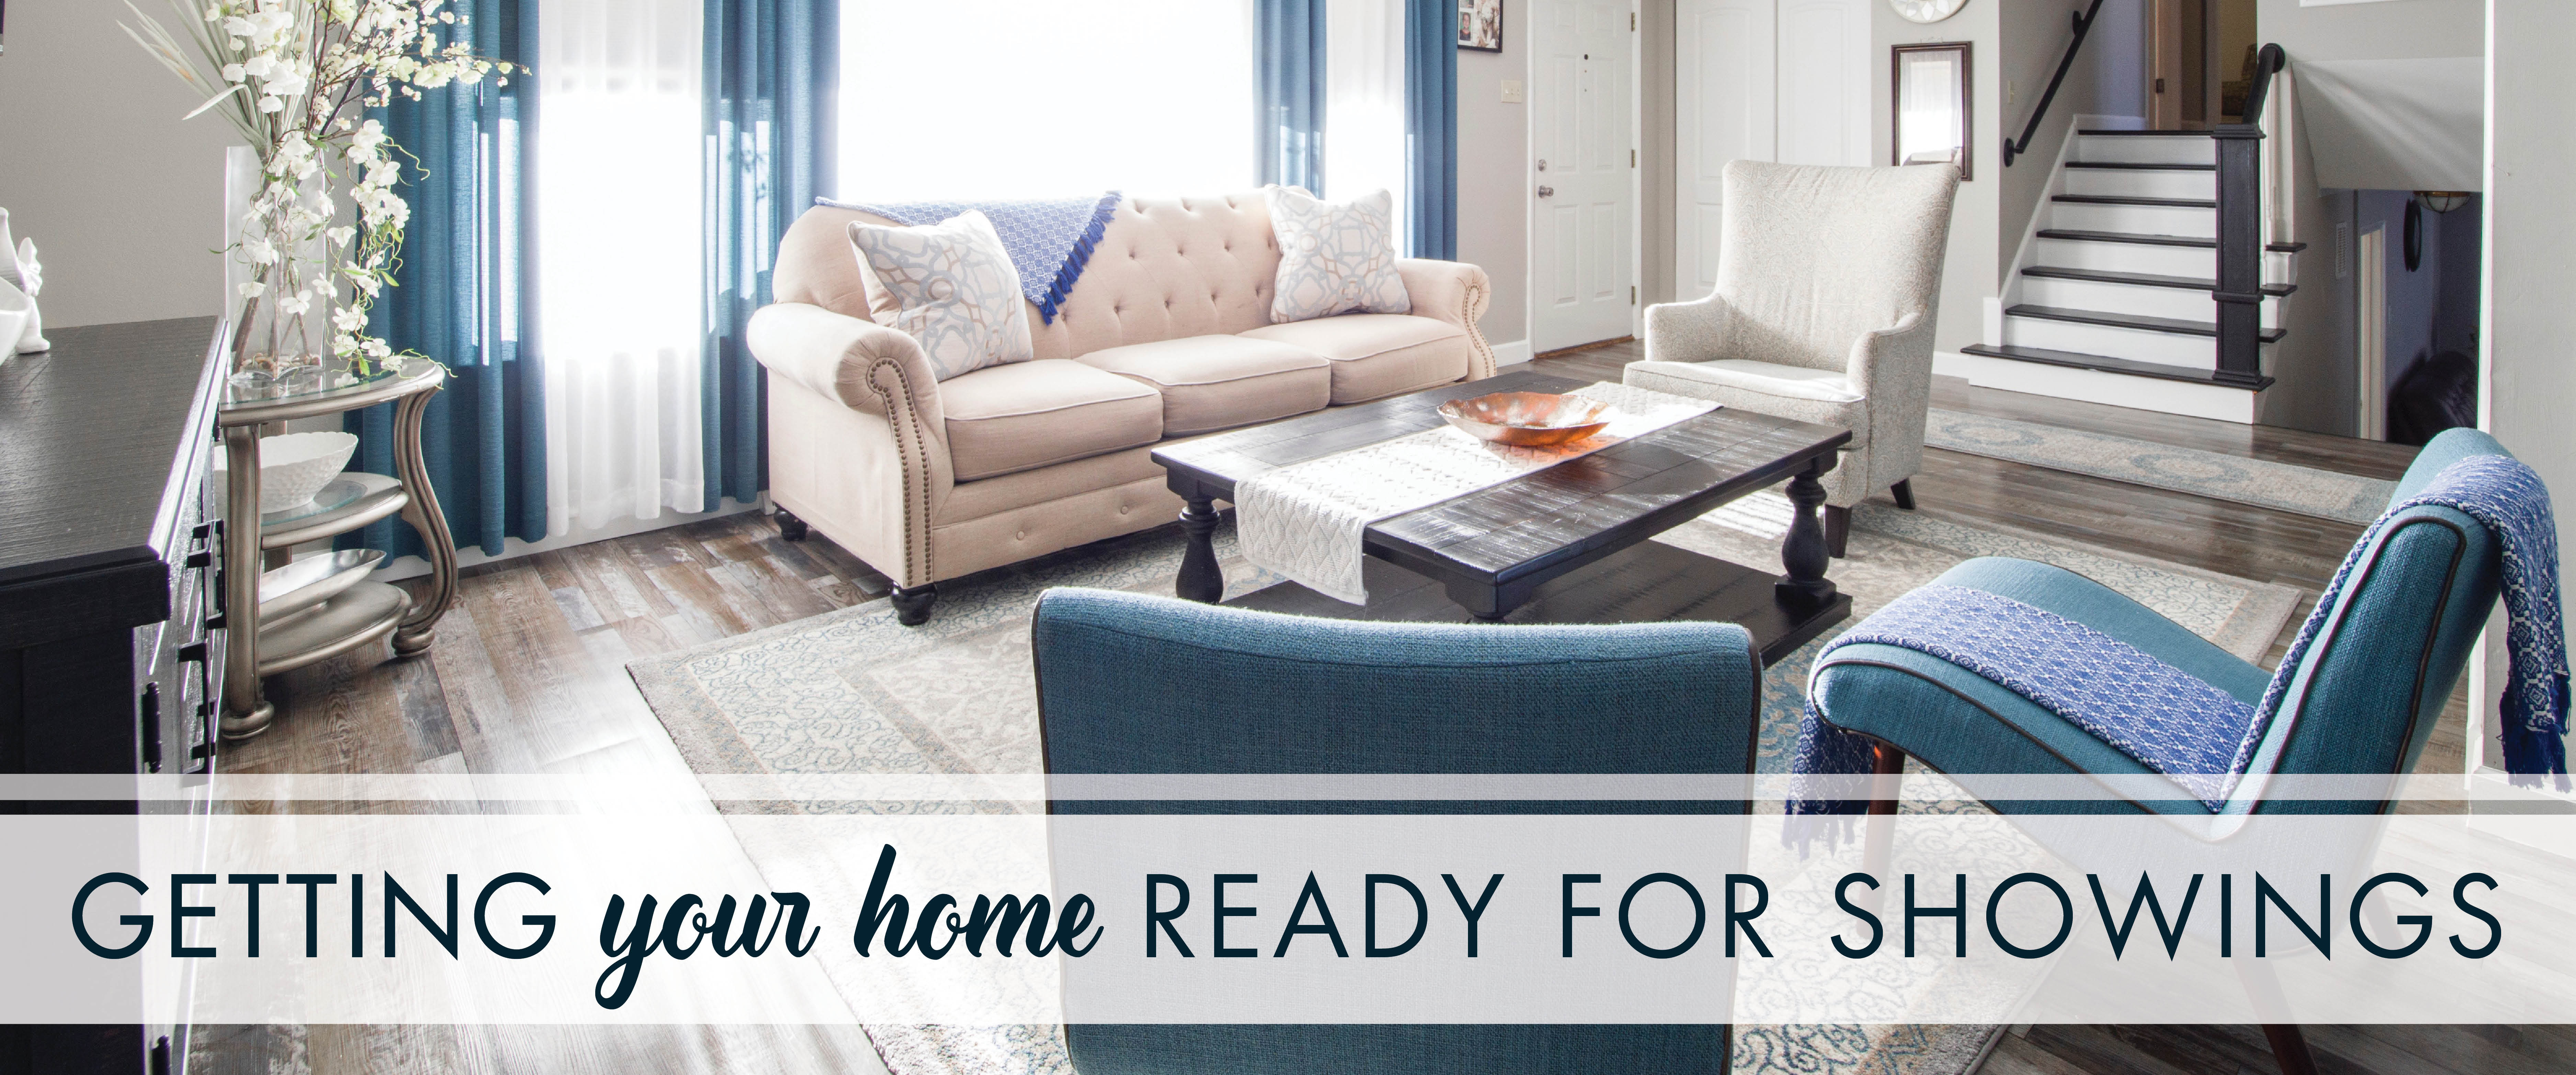 Getting Your Home Ready for Showings